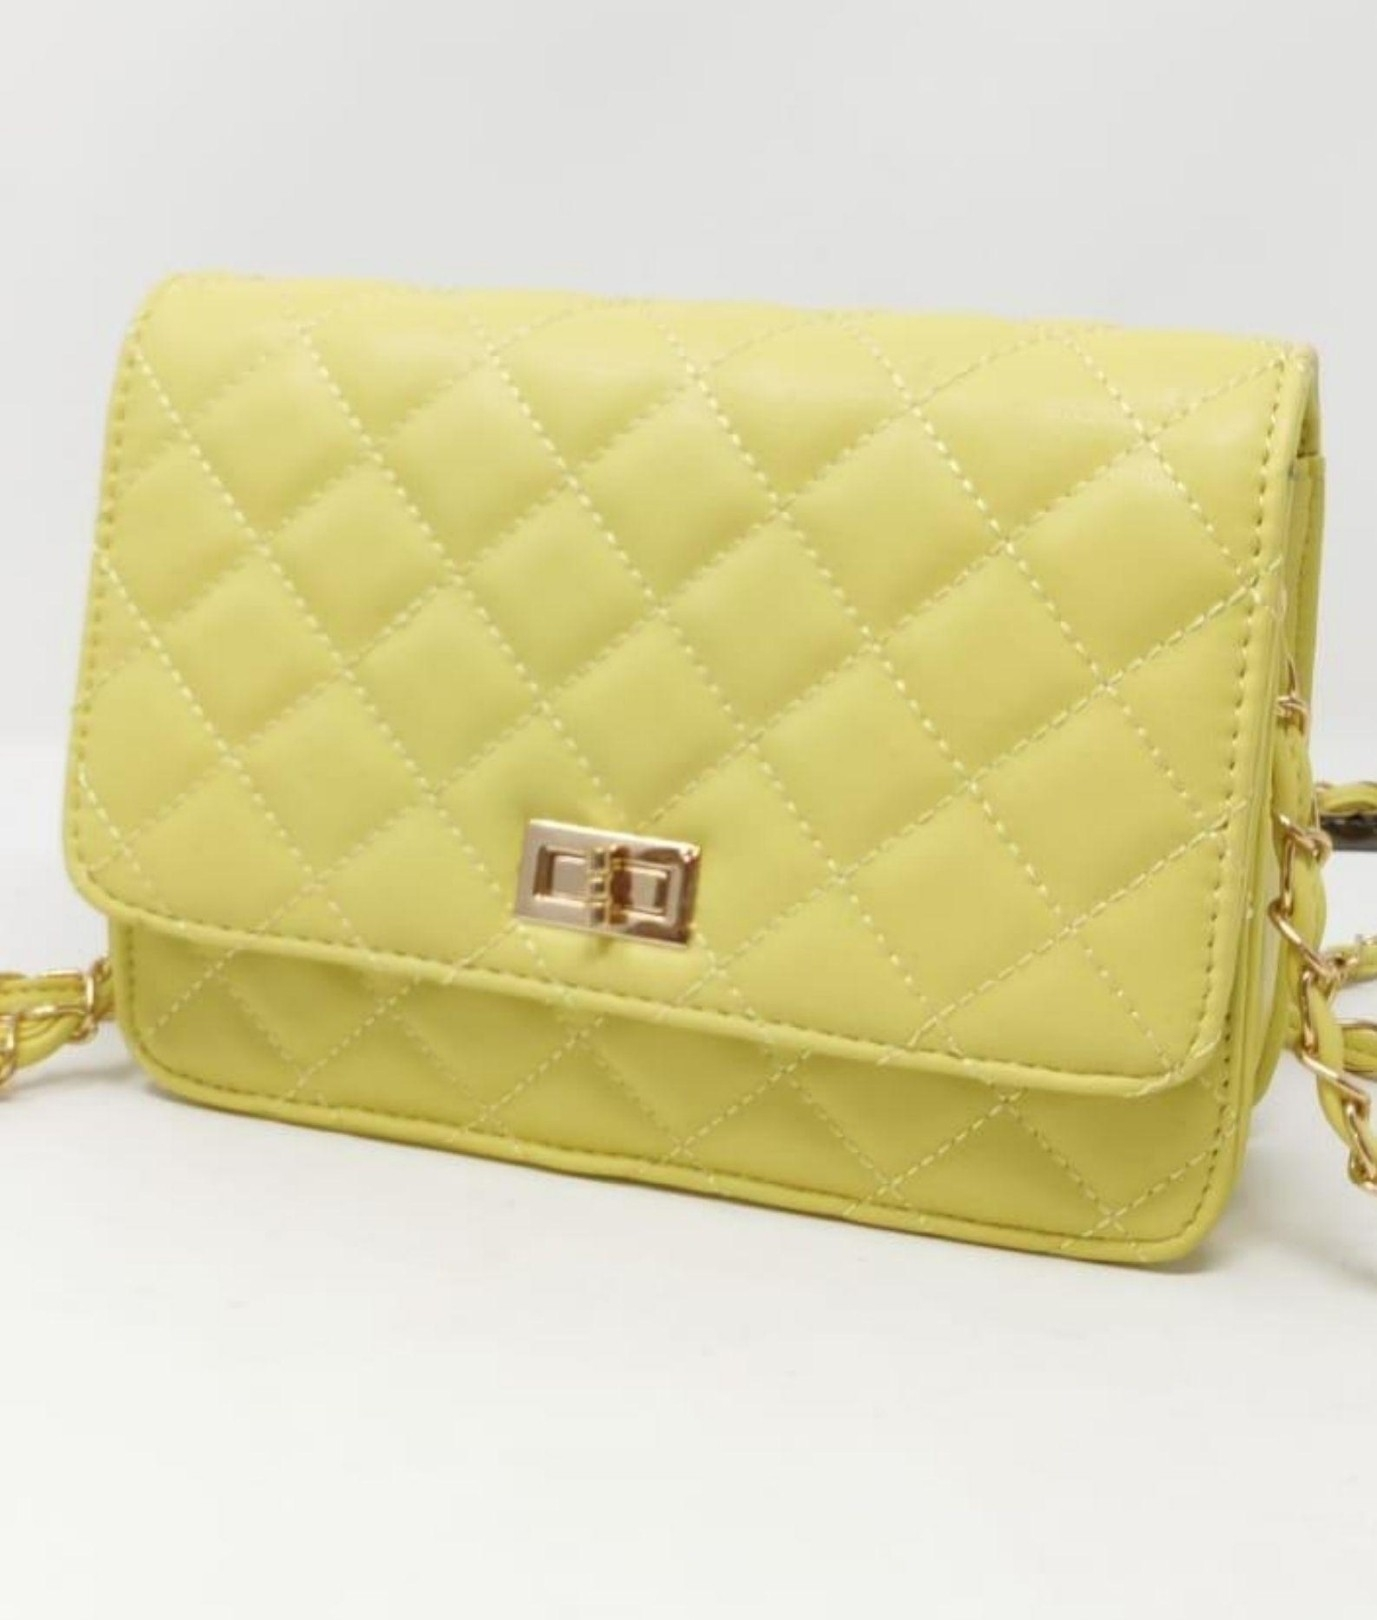 Ainy shoulder bag -Yellow